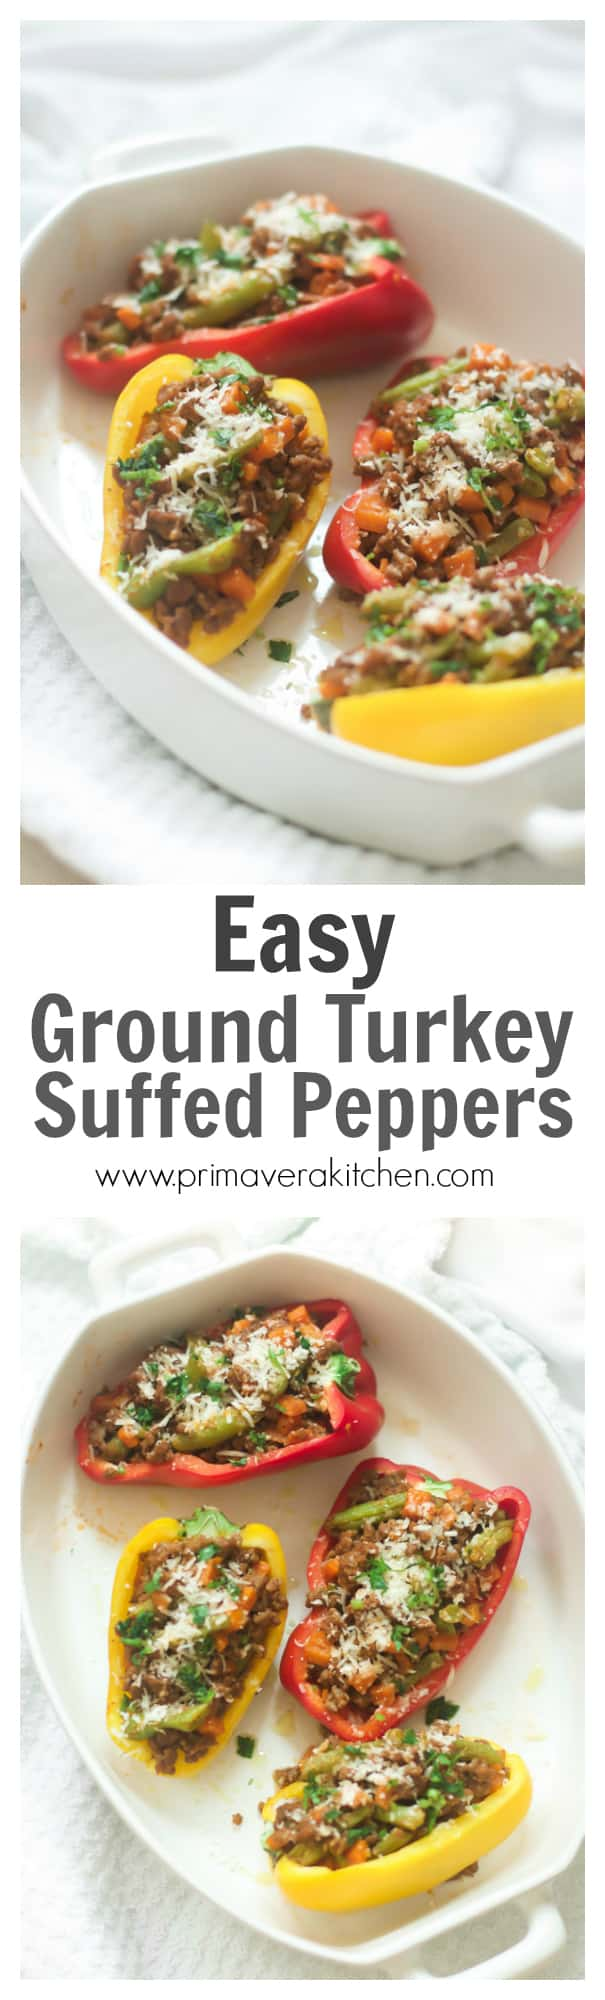 Easy Ground Turkey Stuffed Peppers - This Easy Ground Turkey Stuffed ...